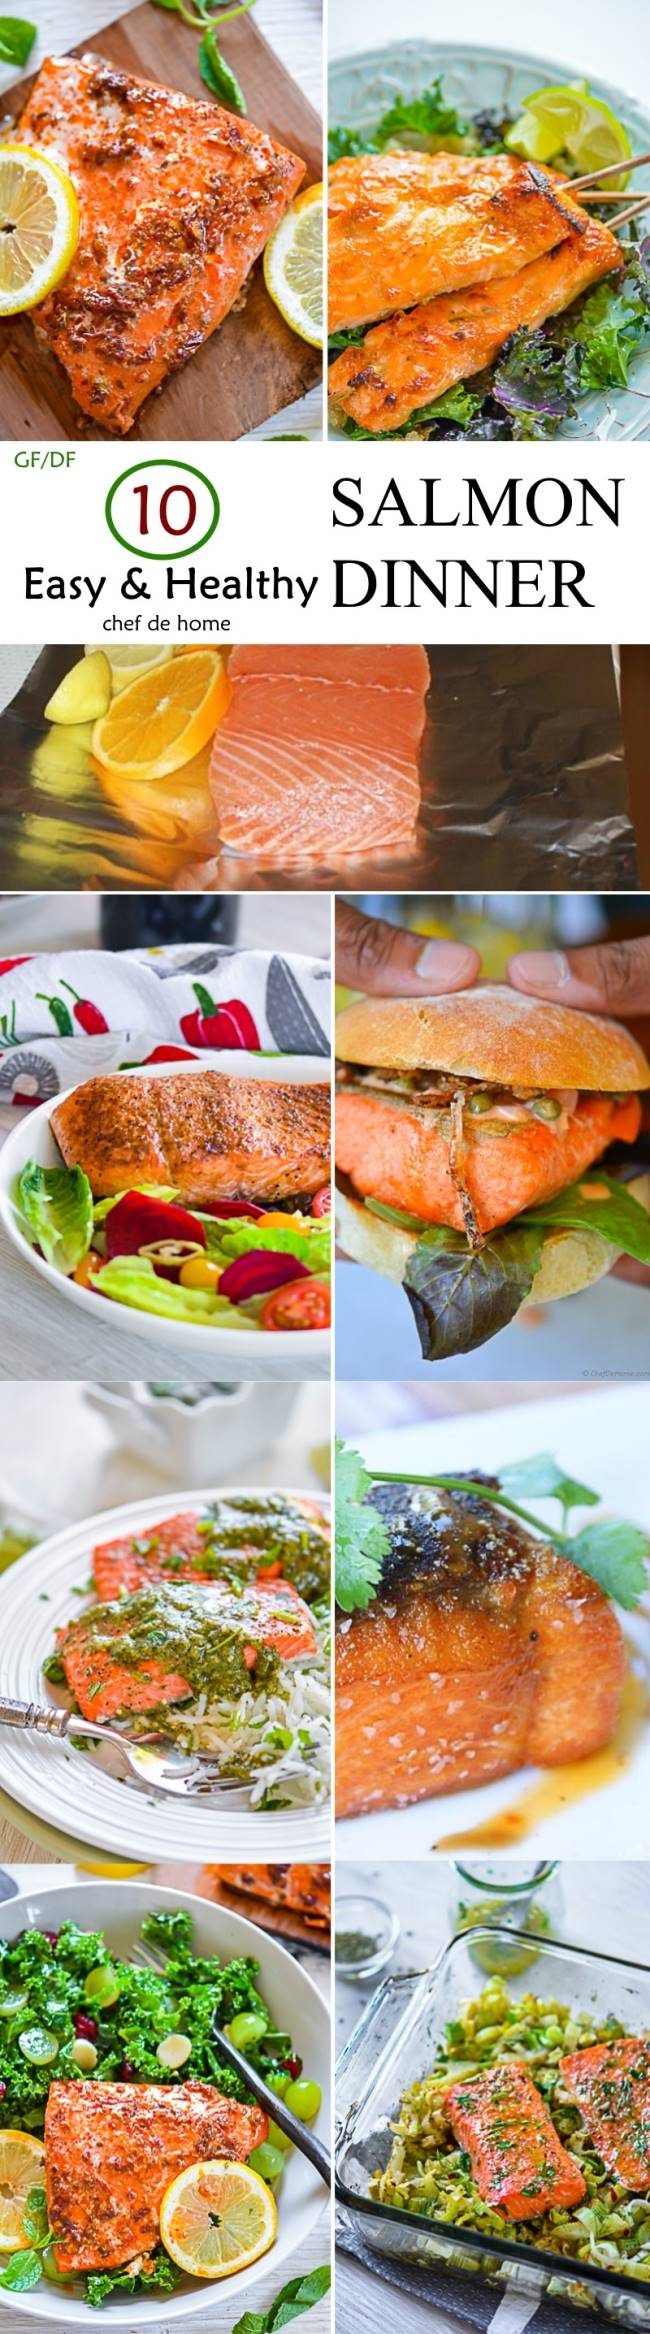 10 easy and healthy salmon recipes meals chefdehome com